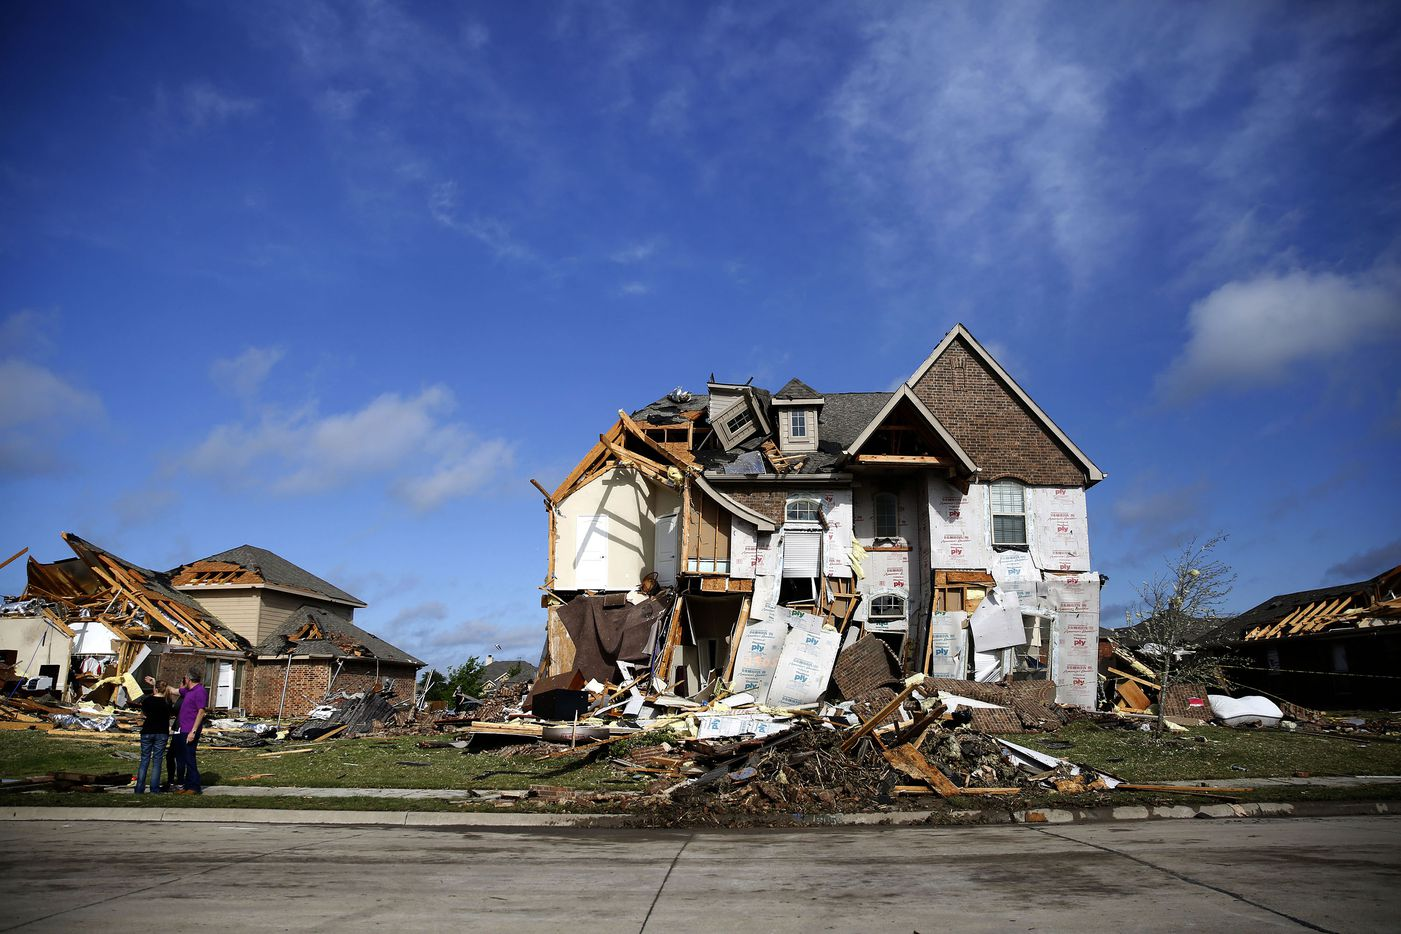 Damaged homes along Panhandle Drive following a storm in the early hours of the morning in Rockwall, Texas on Wednesday, March 29, 2017. (Rose Baca/The Dallas Morning News)